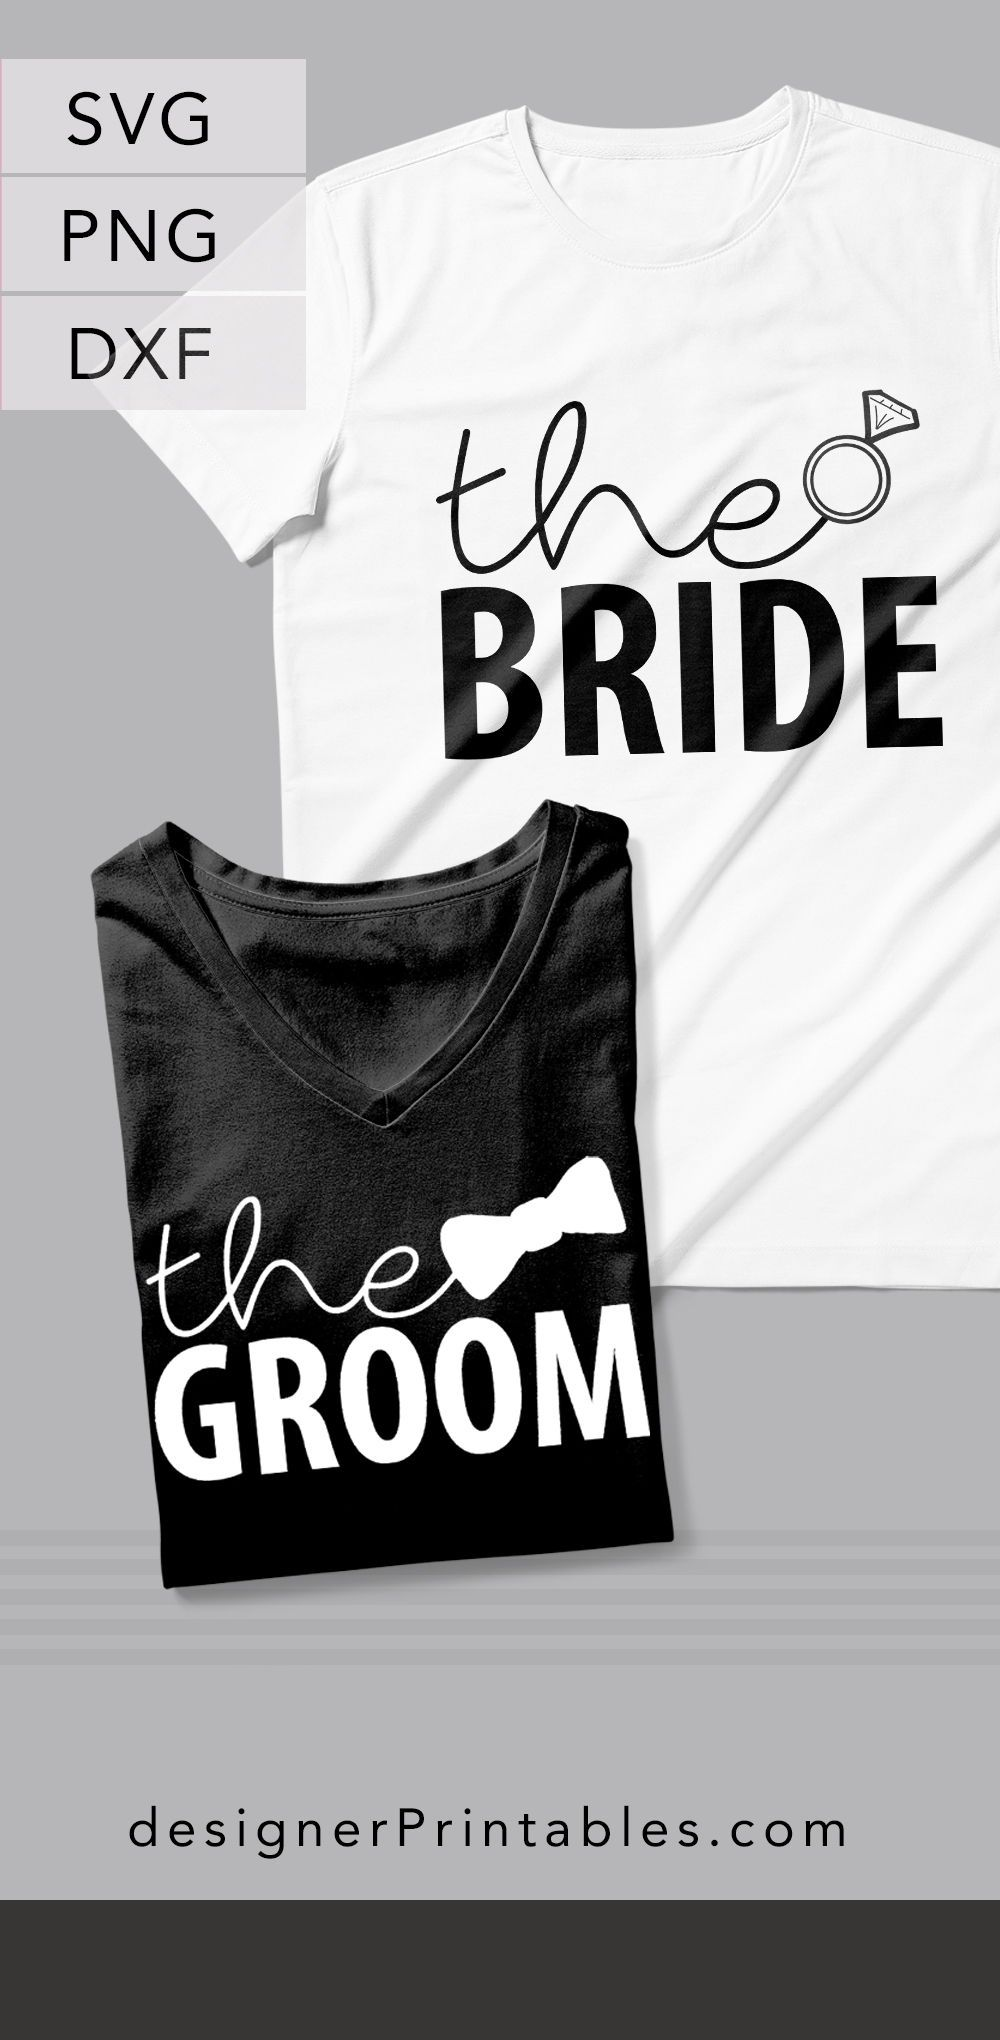 35b41d7188f0b SVG CUT FILES... Classic look and feel to these wedding collection ...